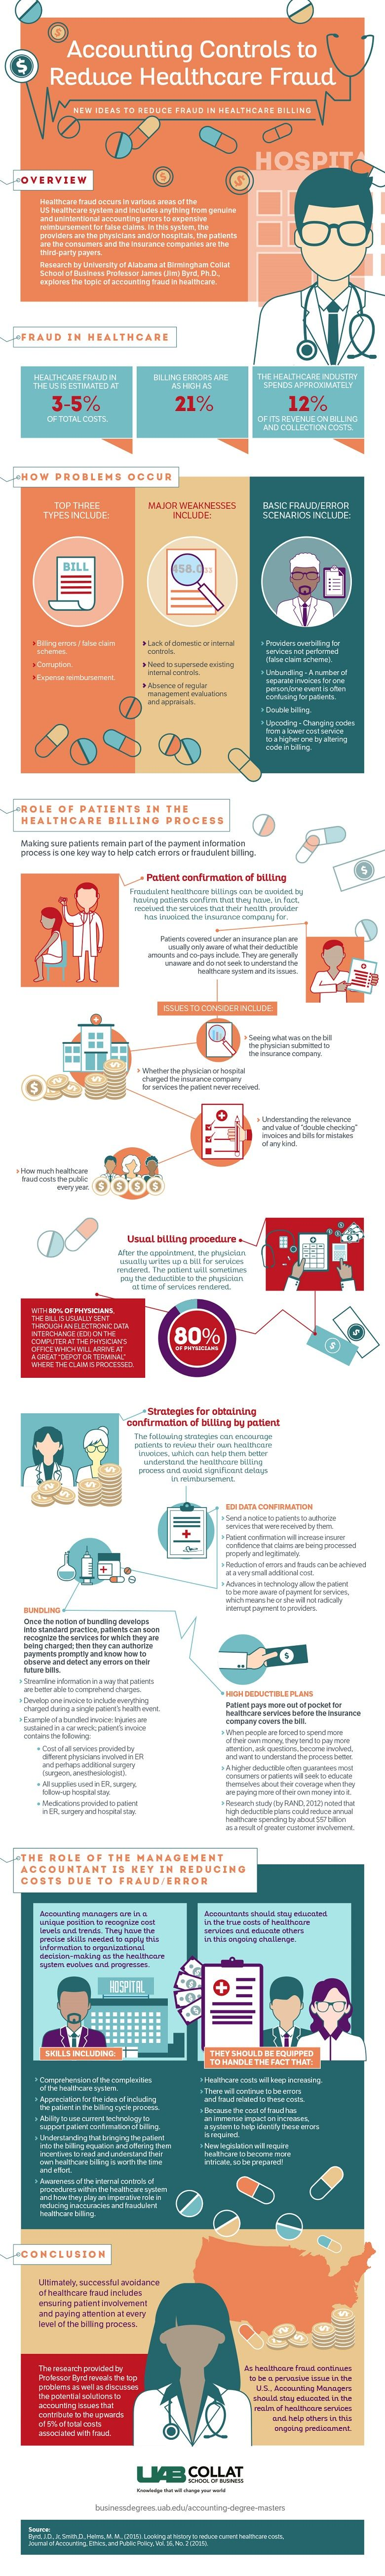 An infographic about accounting controls that reduce healthcare fraud by UAB Collat School of Business.